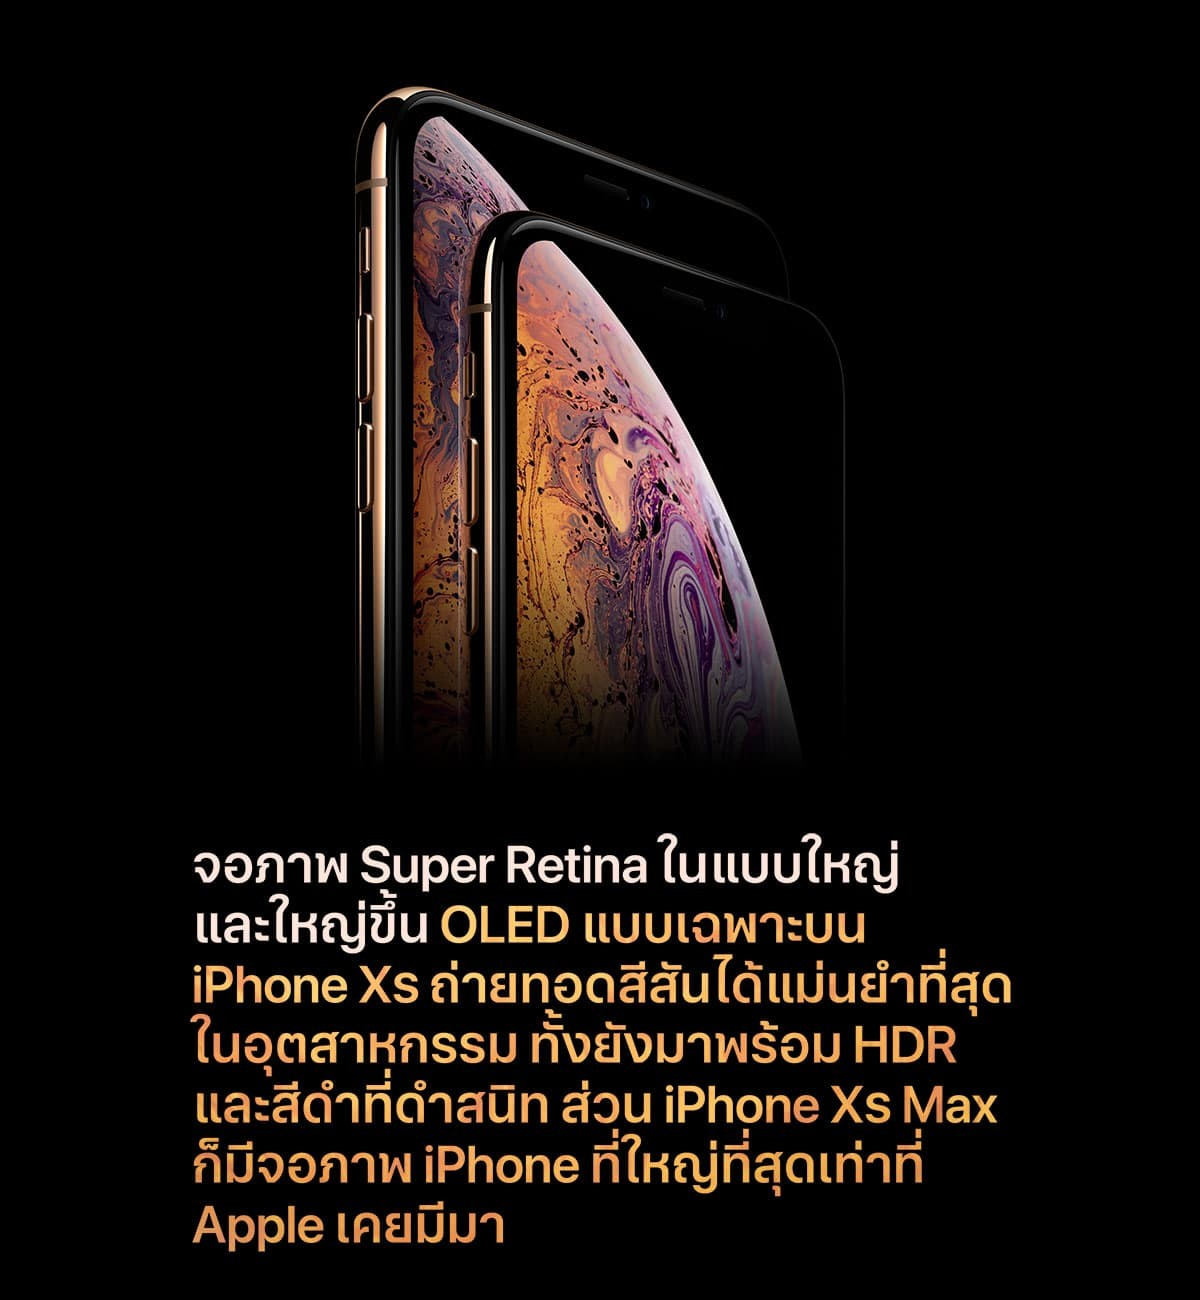 iphone-xs-detail-1_03.jpg